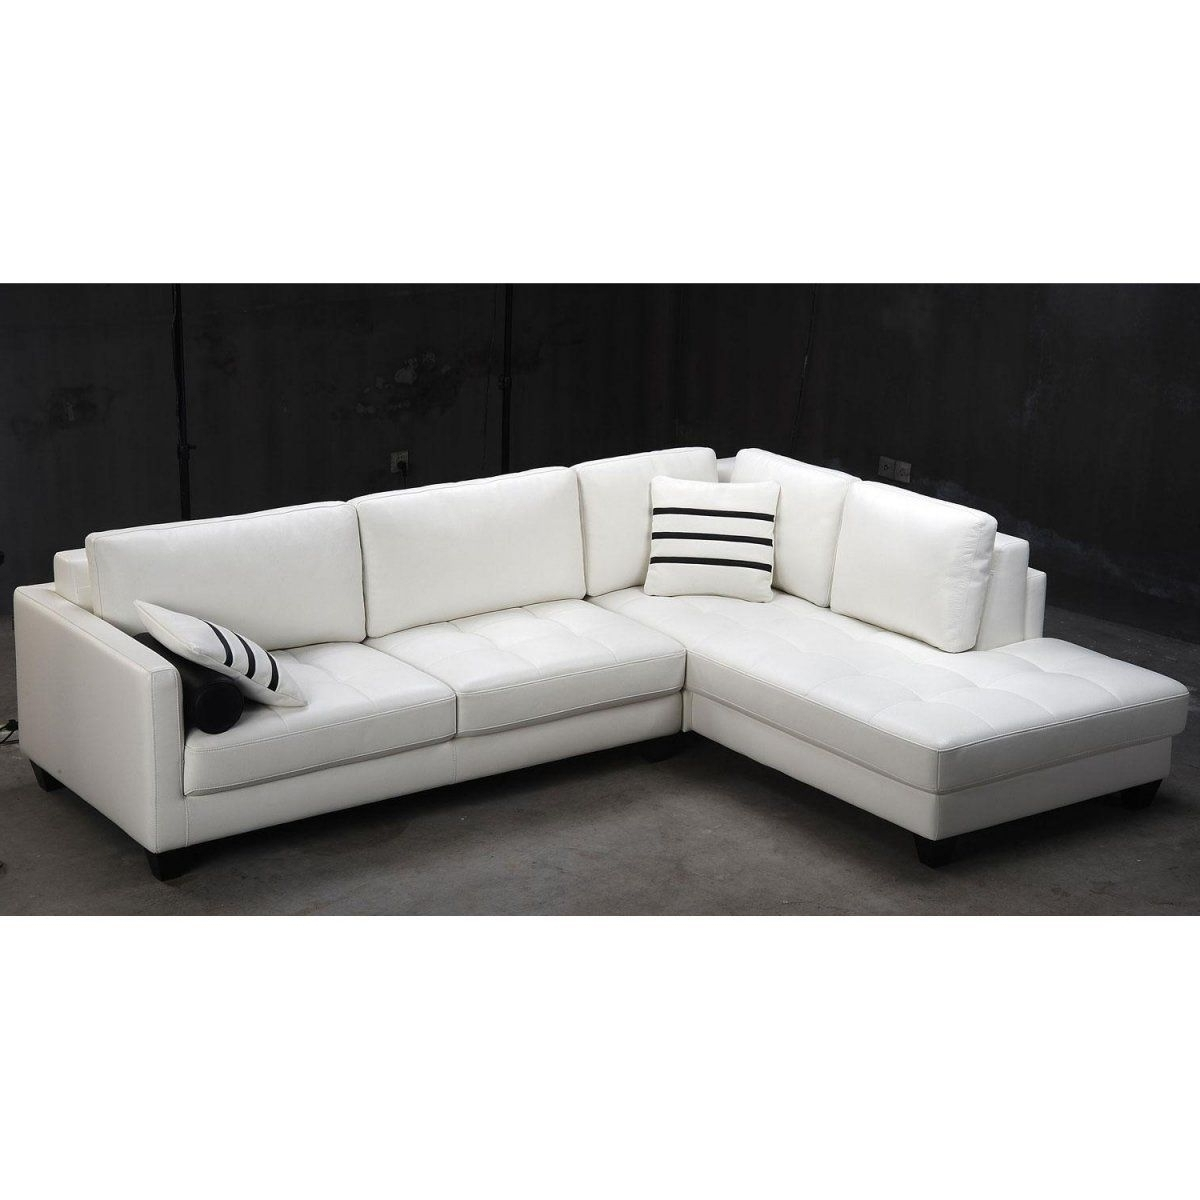 White Sectional Sofas In Famous Tosh Furniture Modern White Leather Sectional Sofa (View 13 of 15)